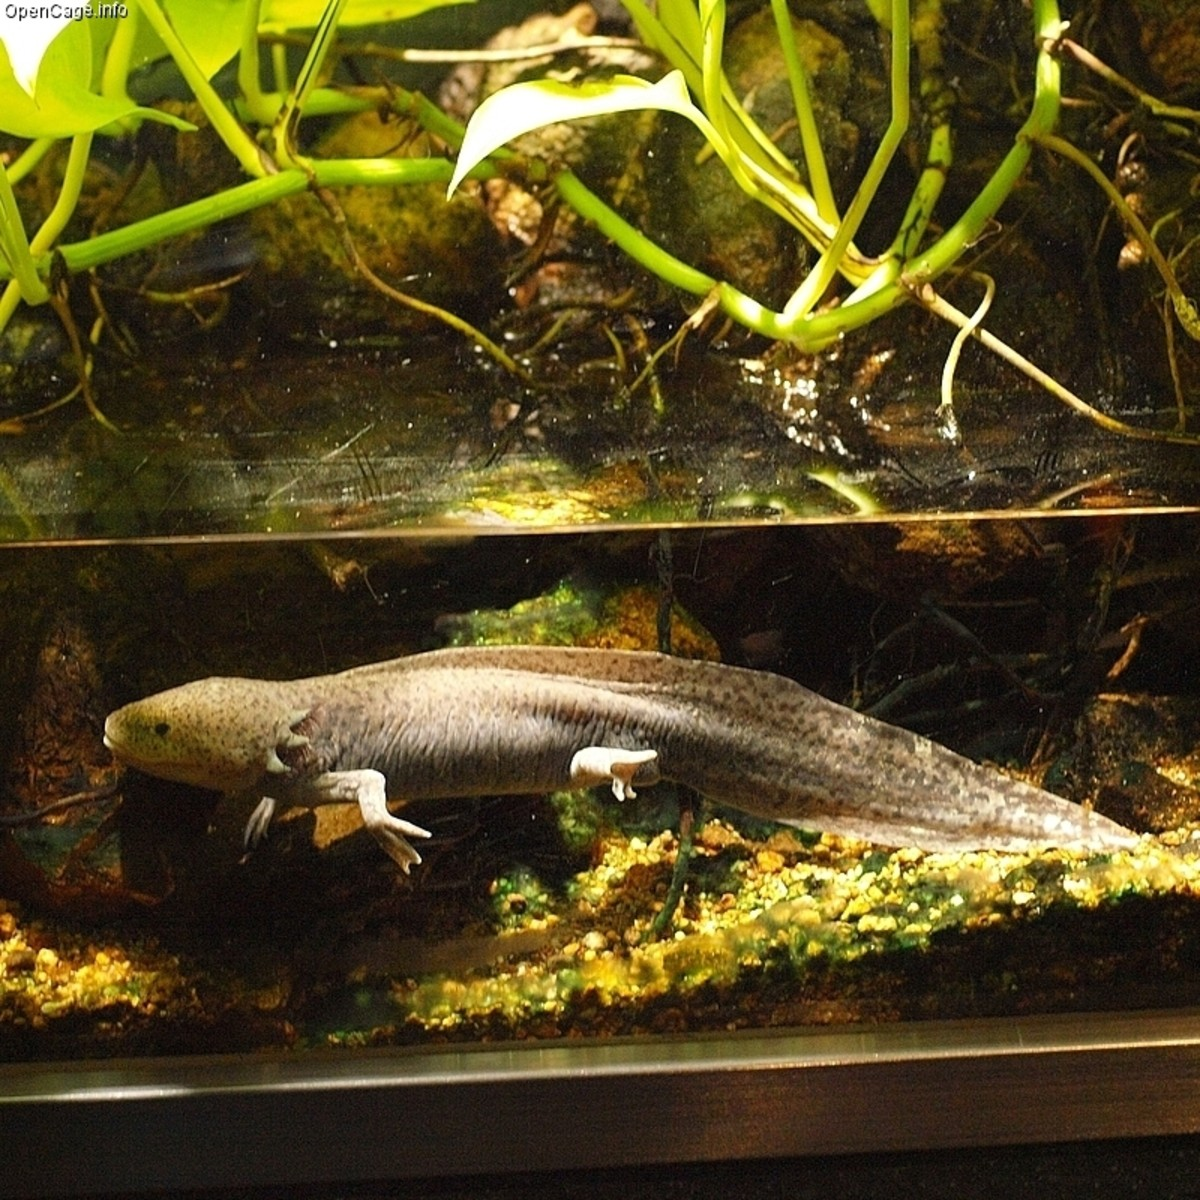 Most axolotls come in shades of brown, gray, and black.